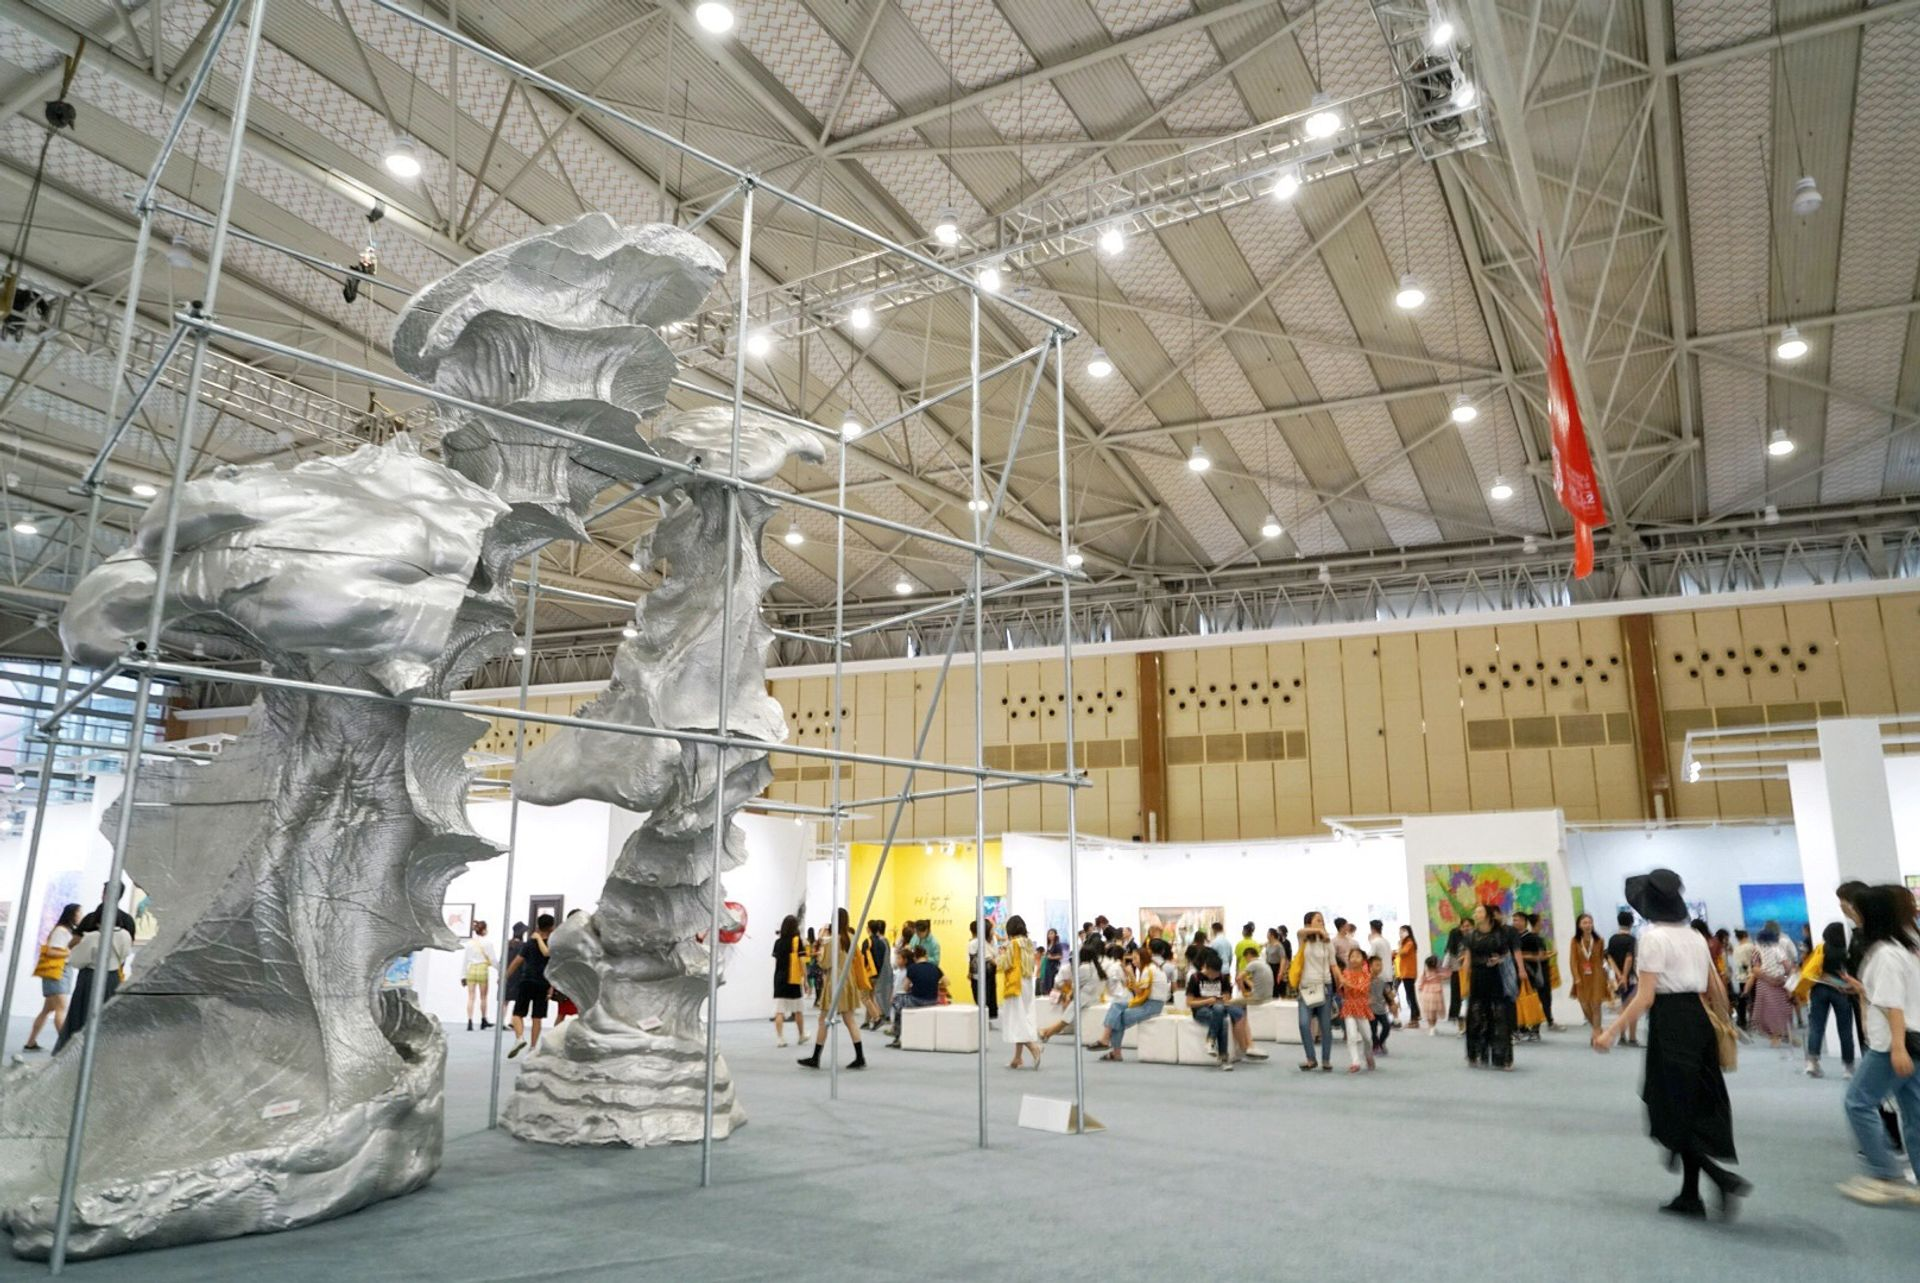 The snappily named Chengdu Century City New International Exhibition and Convention Center provided the new venue for the second Art Chengdu Courtesy of Art Chengdu